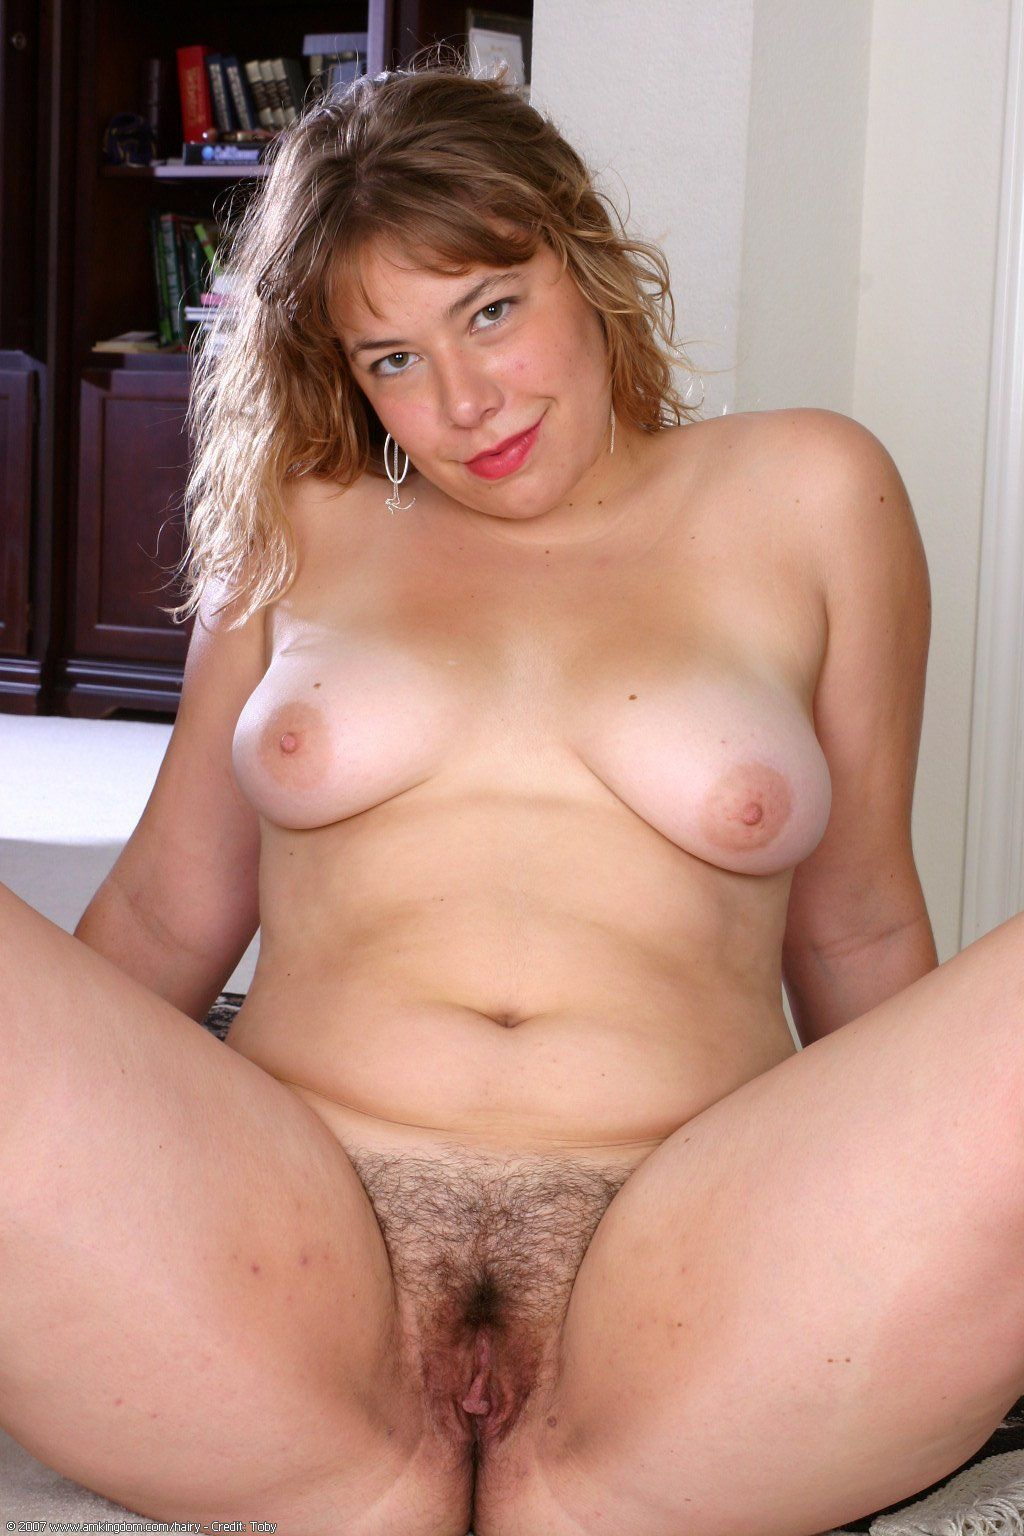 Recommend Best Of Old Hairy Blond Pussy